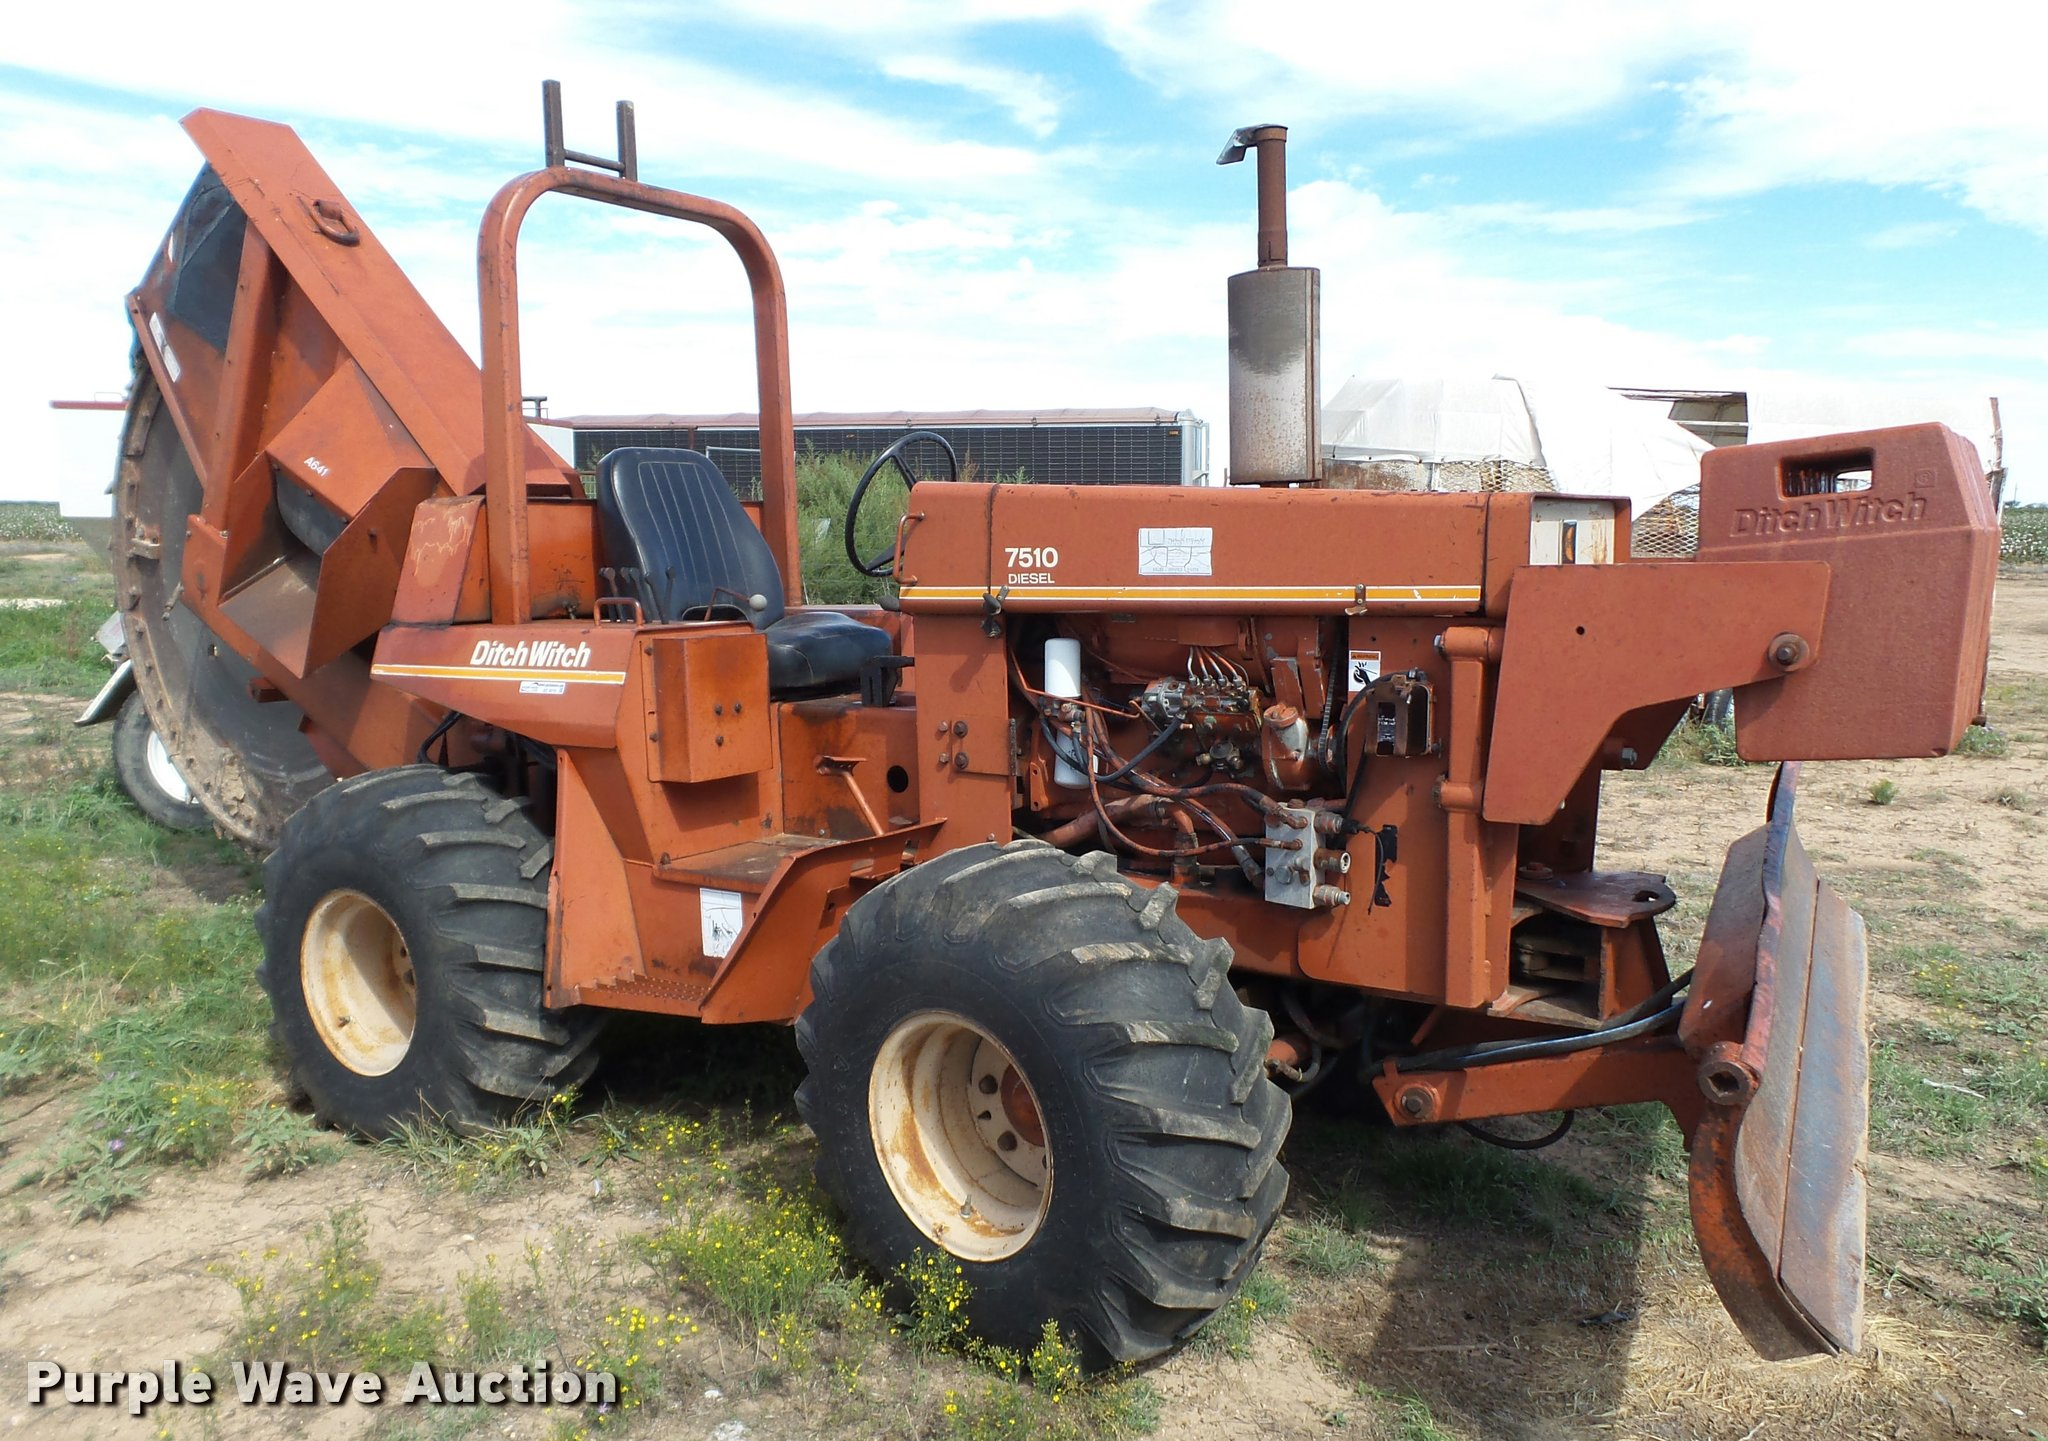 Ditch Witch 7510 manual